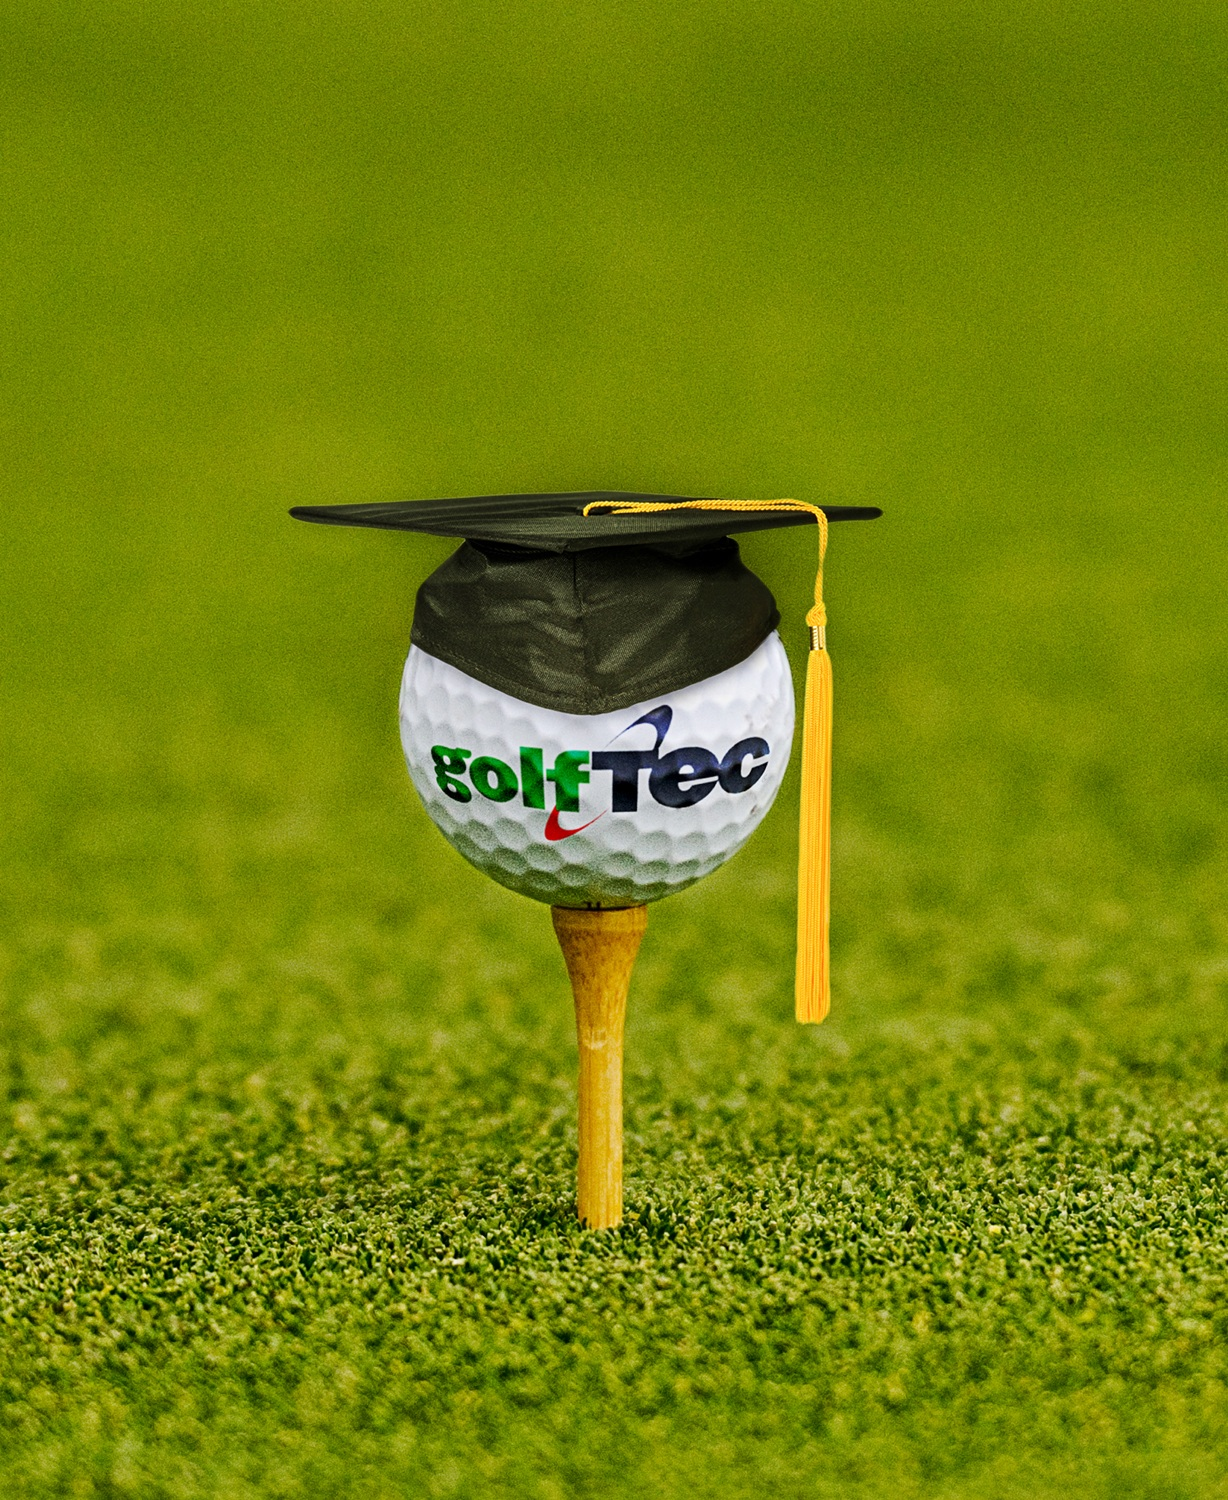 GolfTEC University Graduates Are Ready to Teach the World Golftec